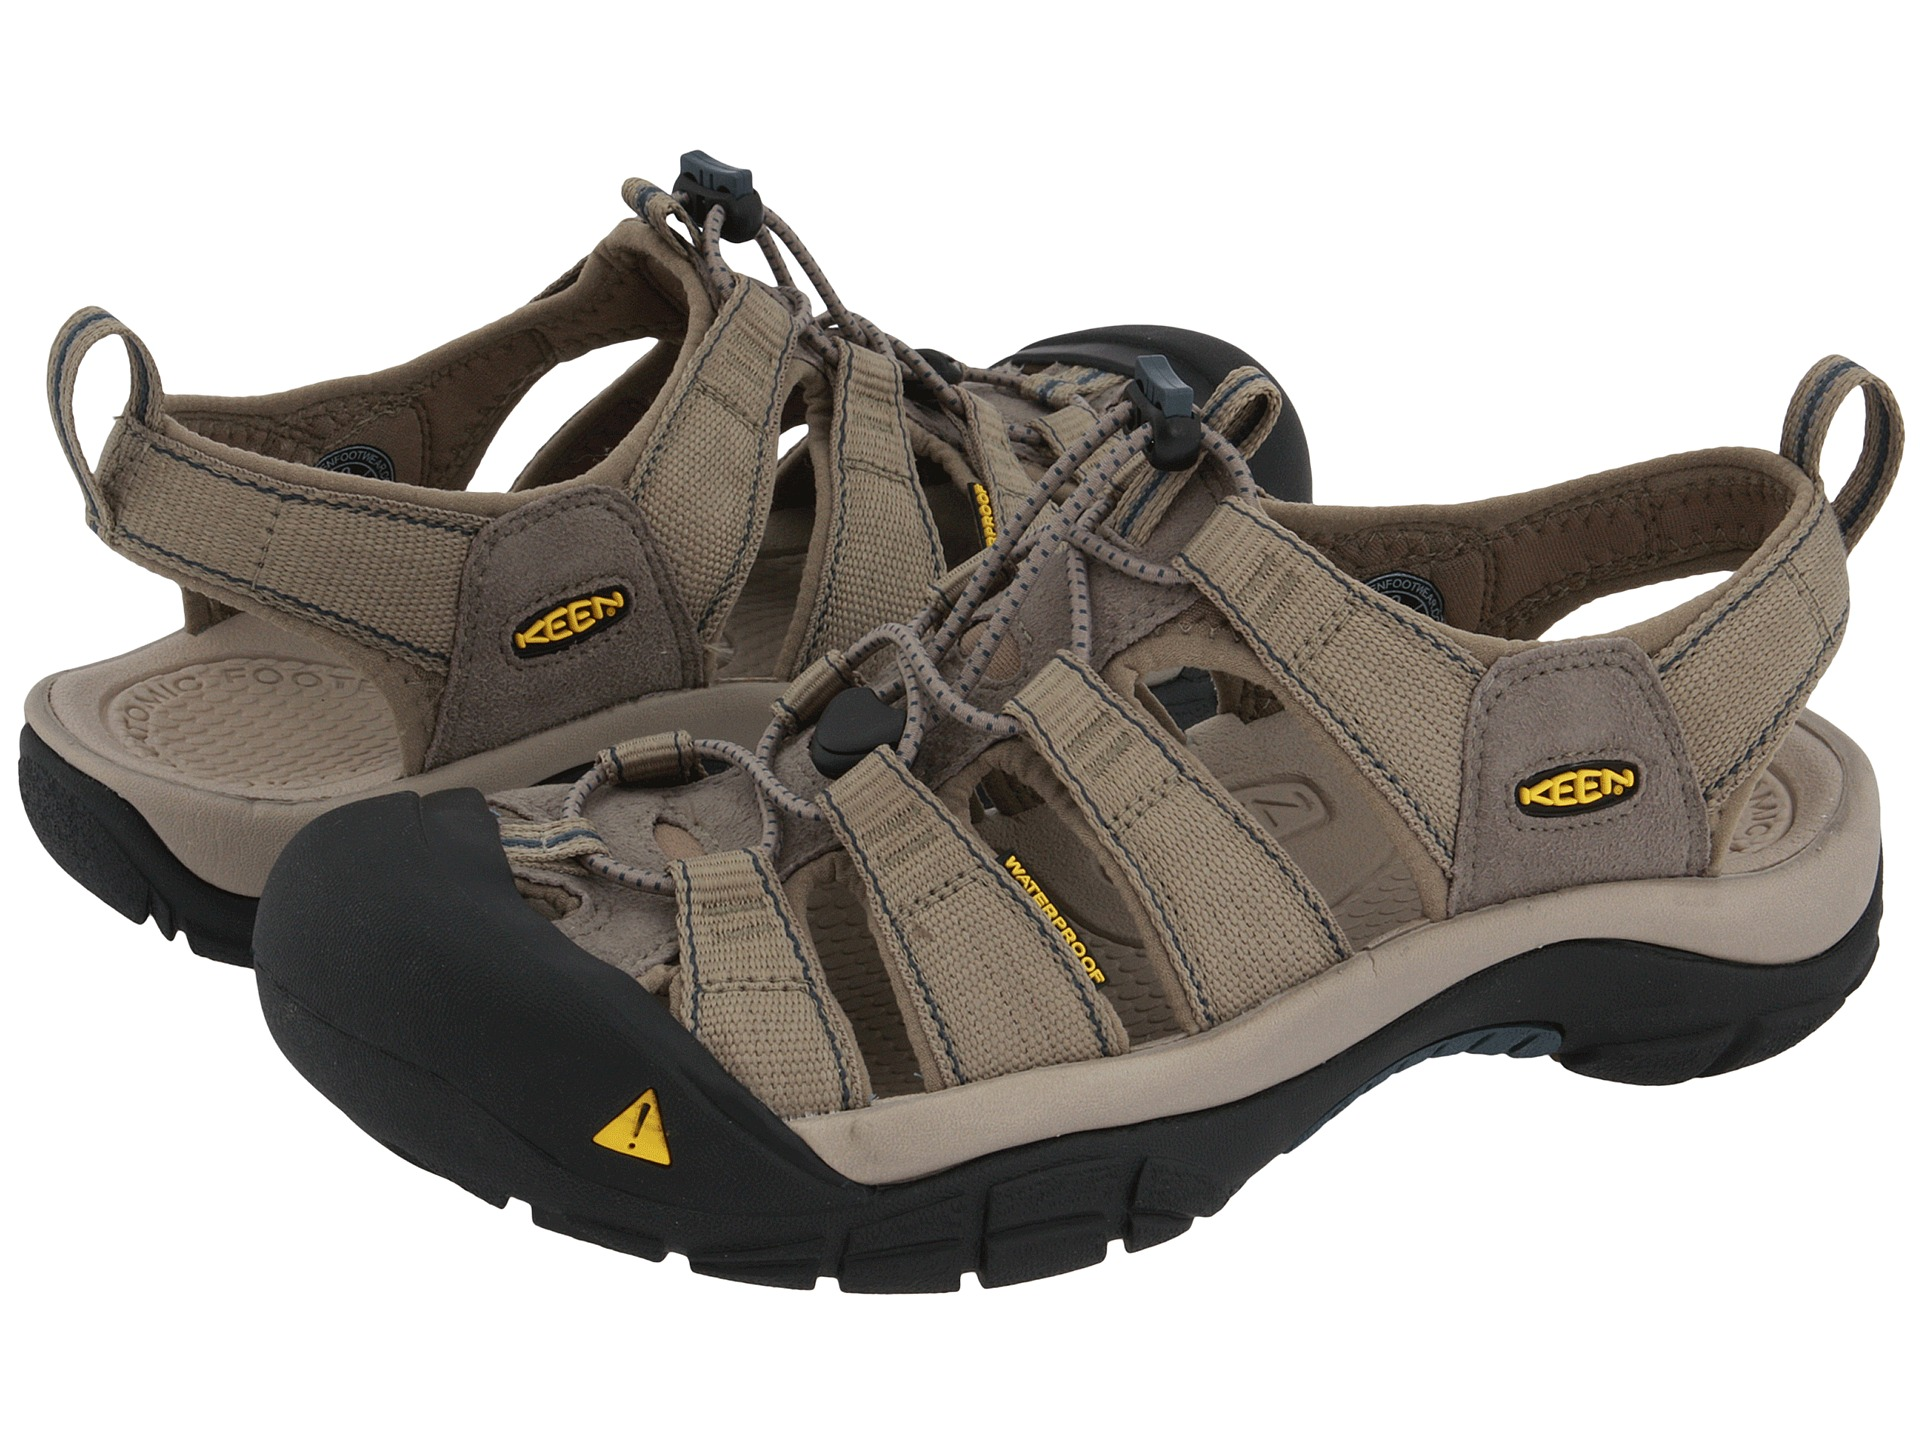 Keen Baby Shoes Size